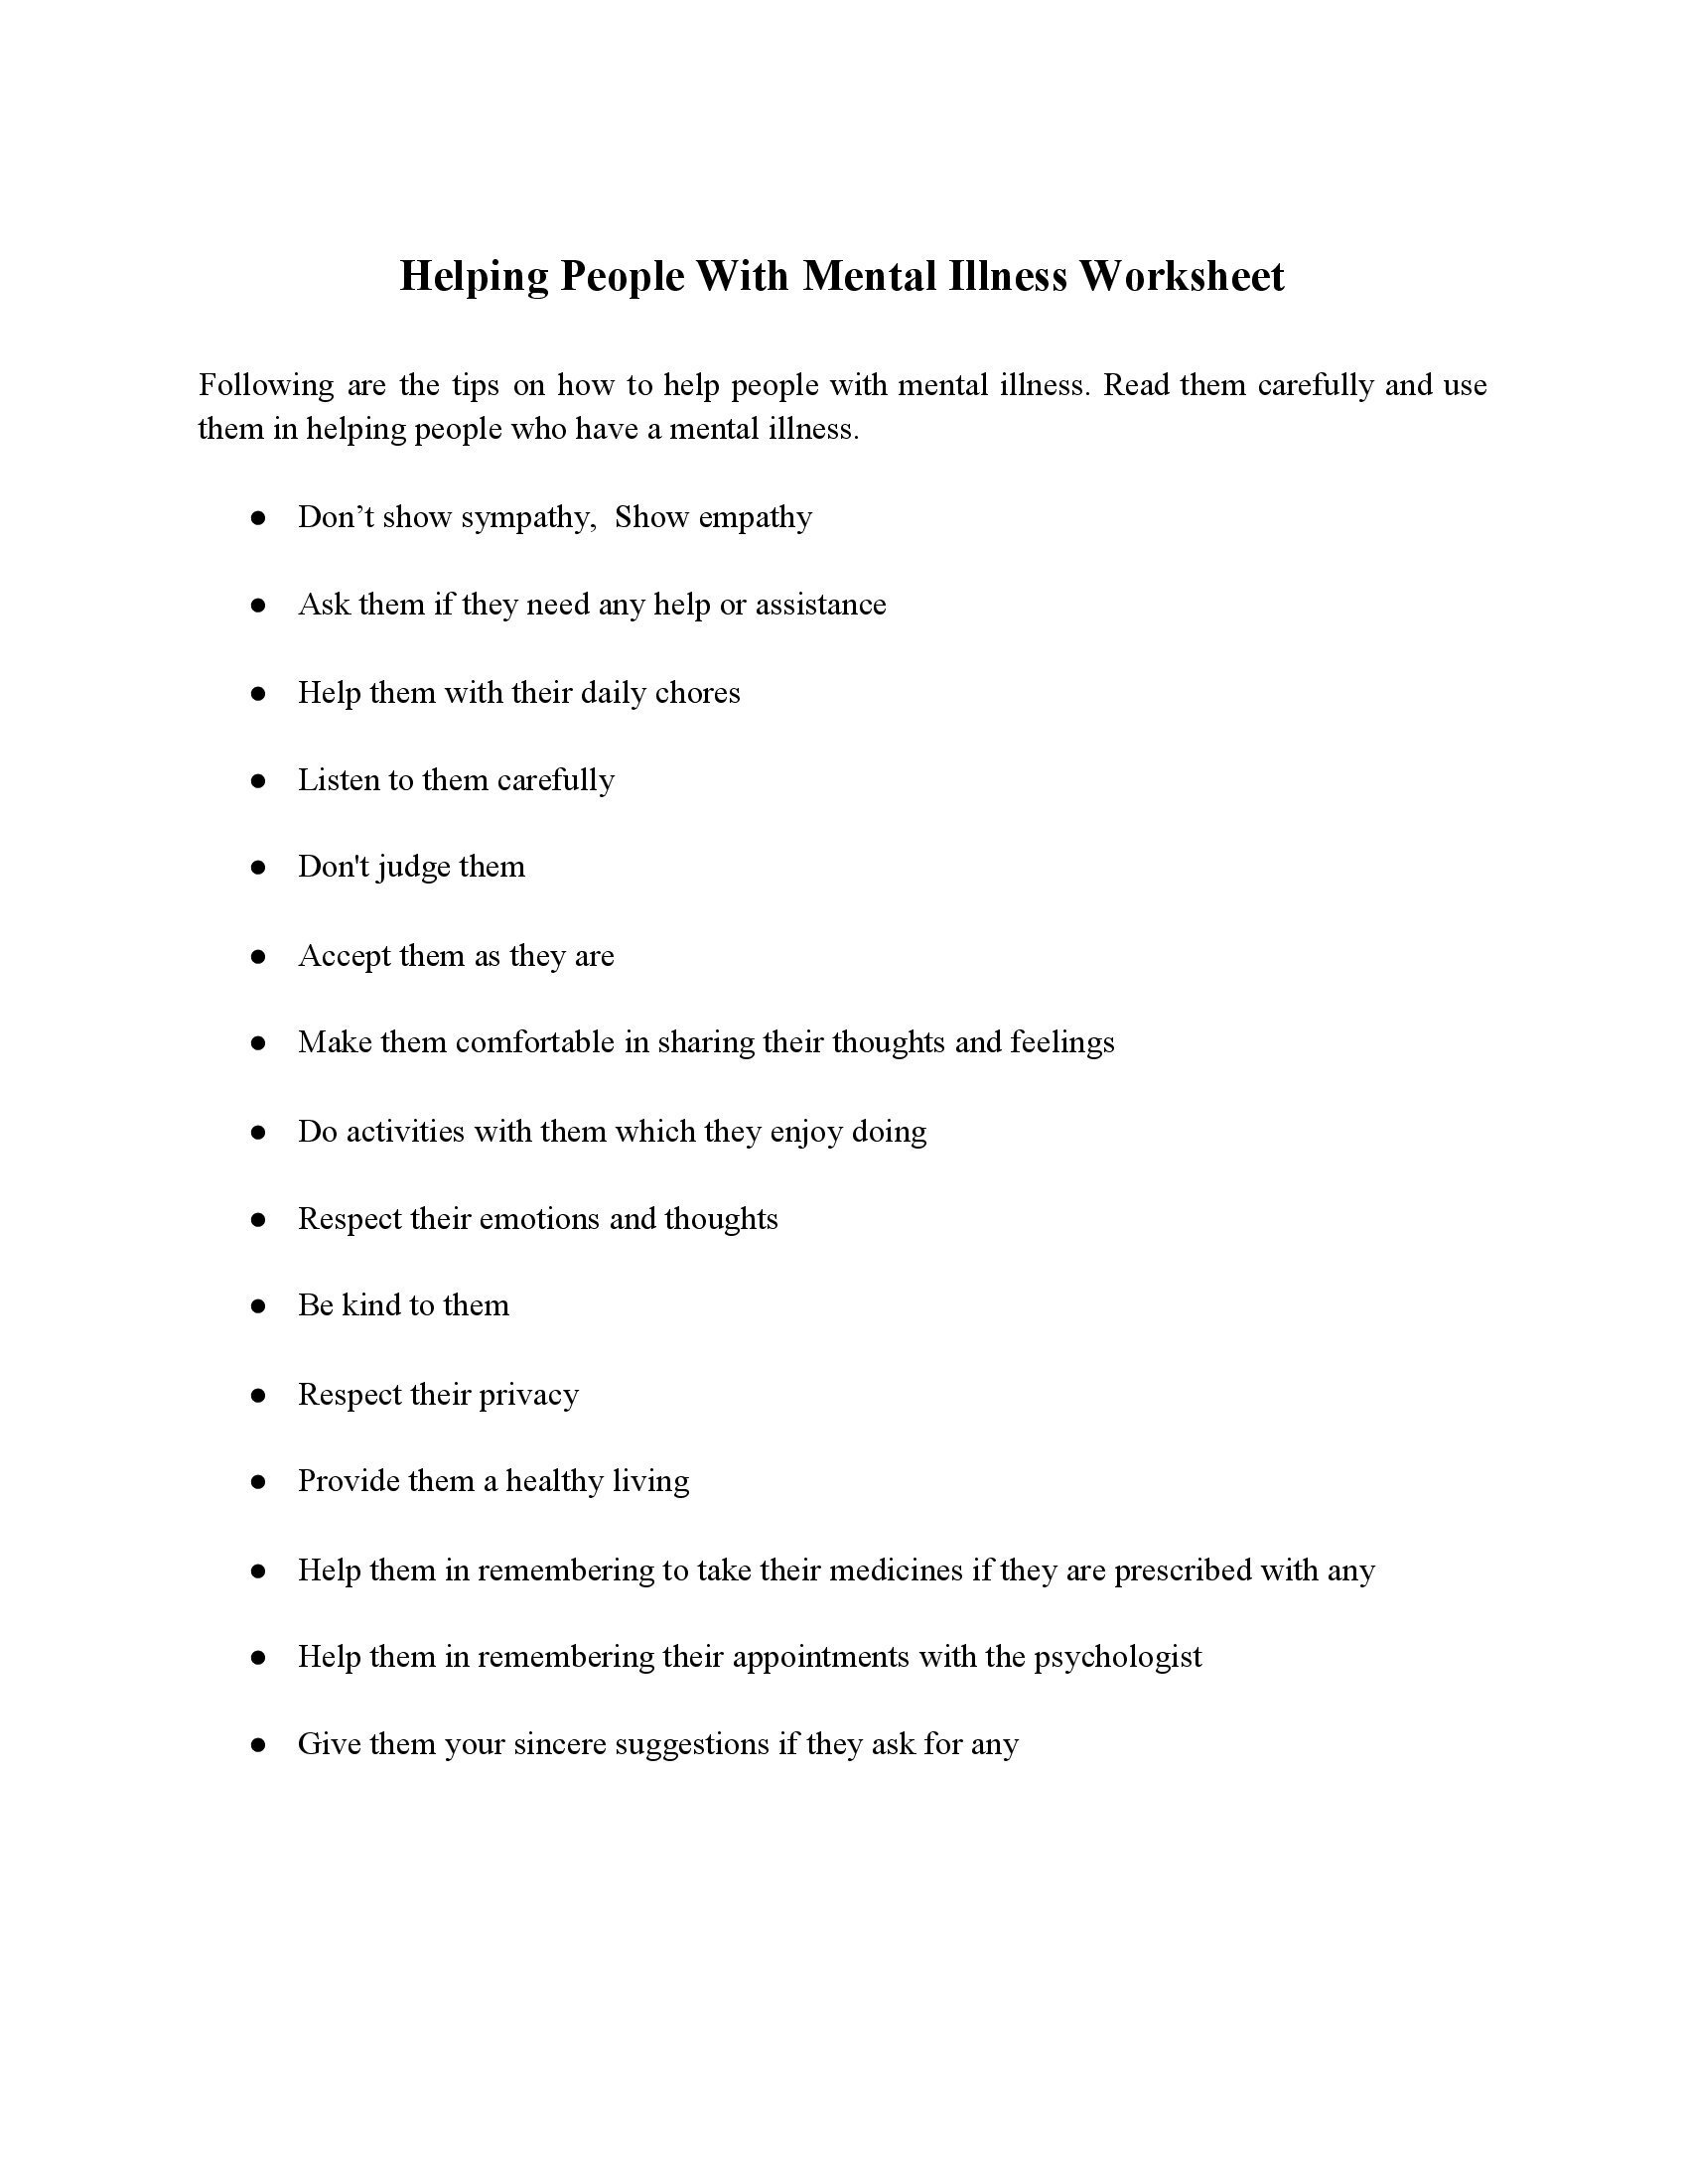 Helping People With Mental Illness Worksheet